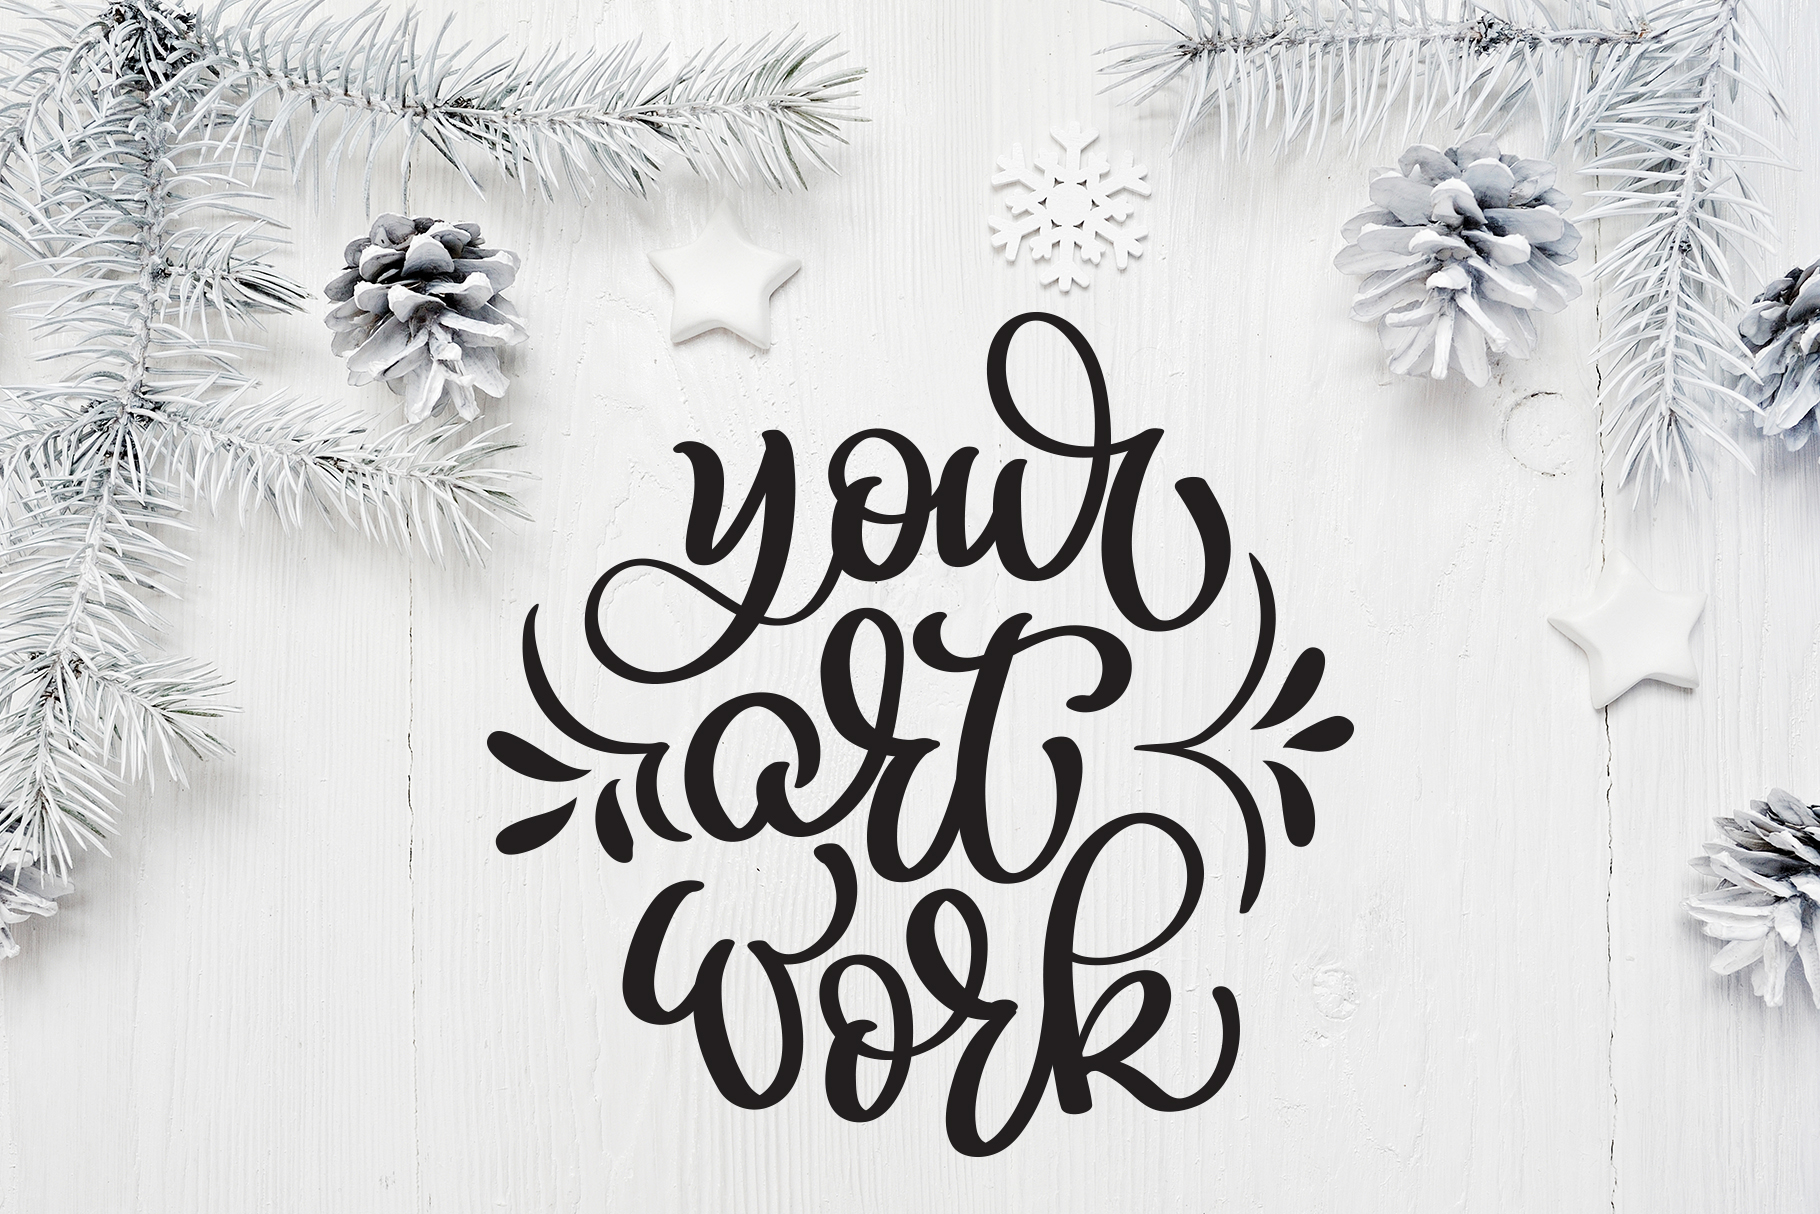 Christmas Photos Set Graphic Holidays By Happy Letters - Image 4